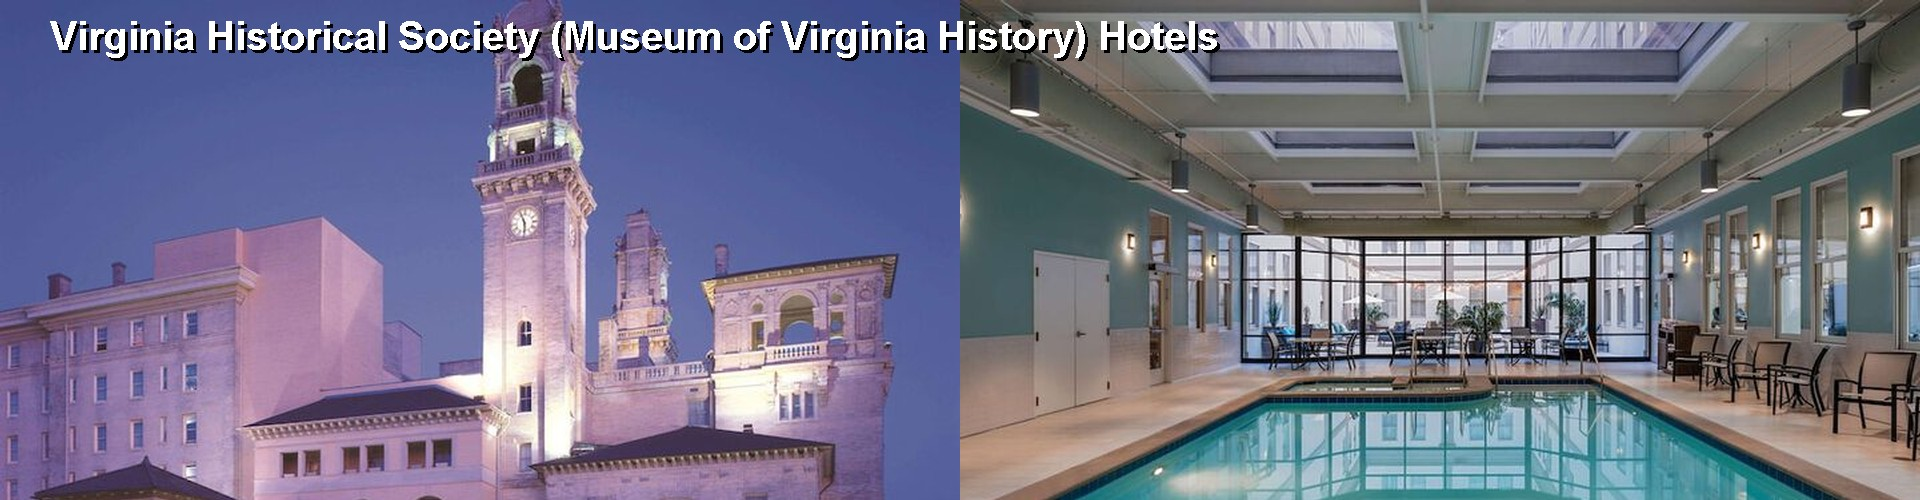 4 Best Hotels near Virginia Historical Society (Museum of Virginia History)